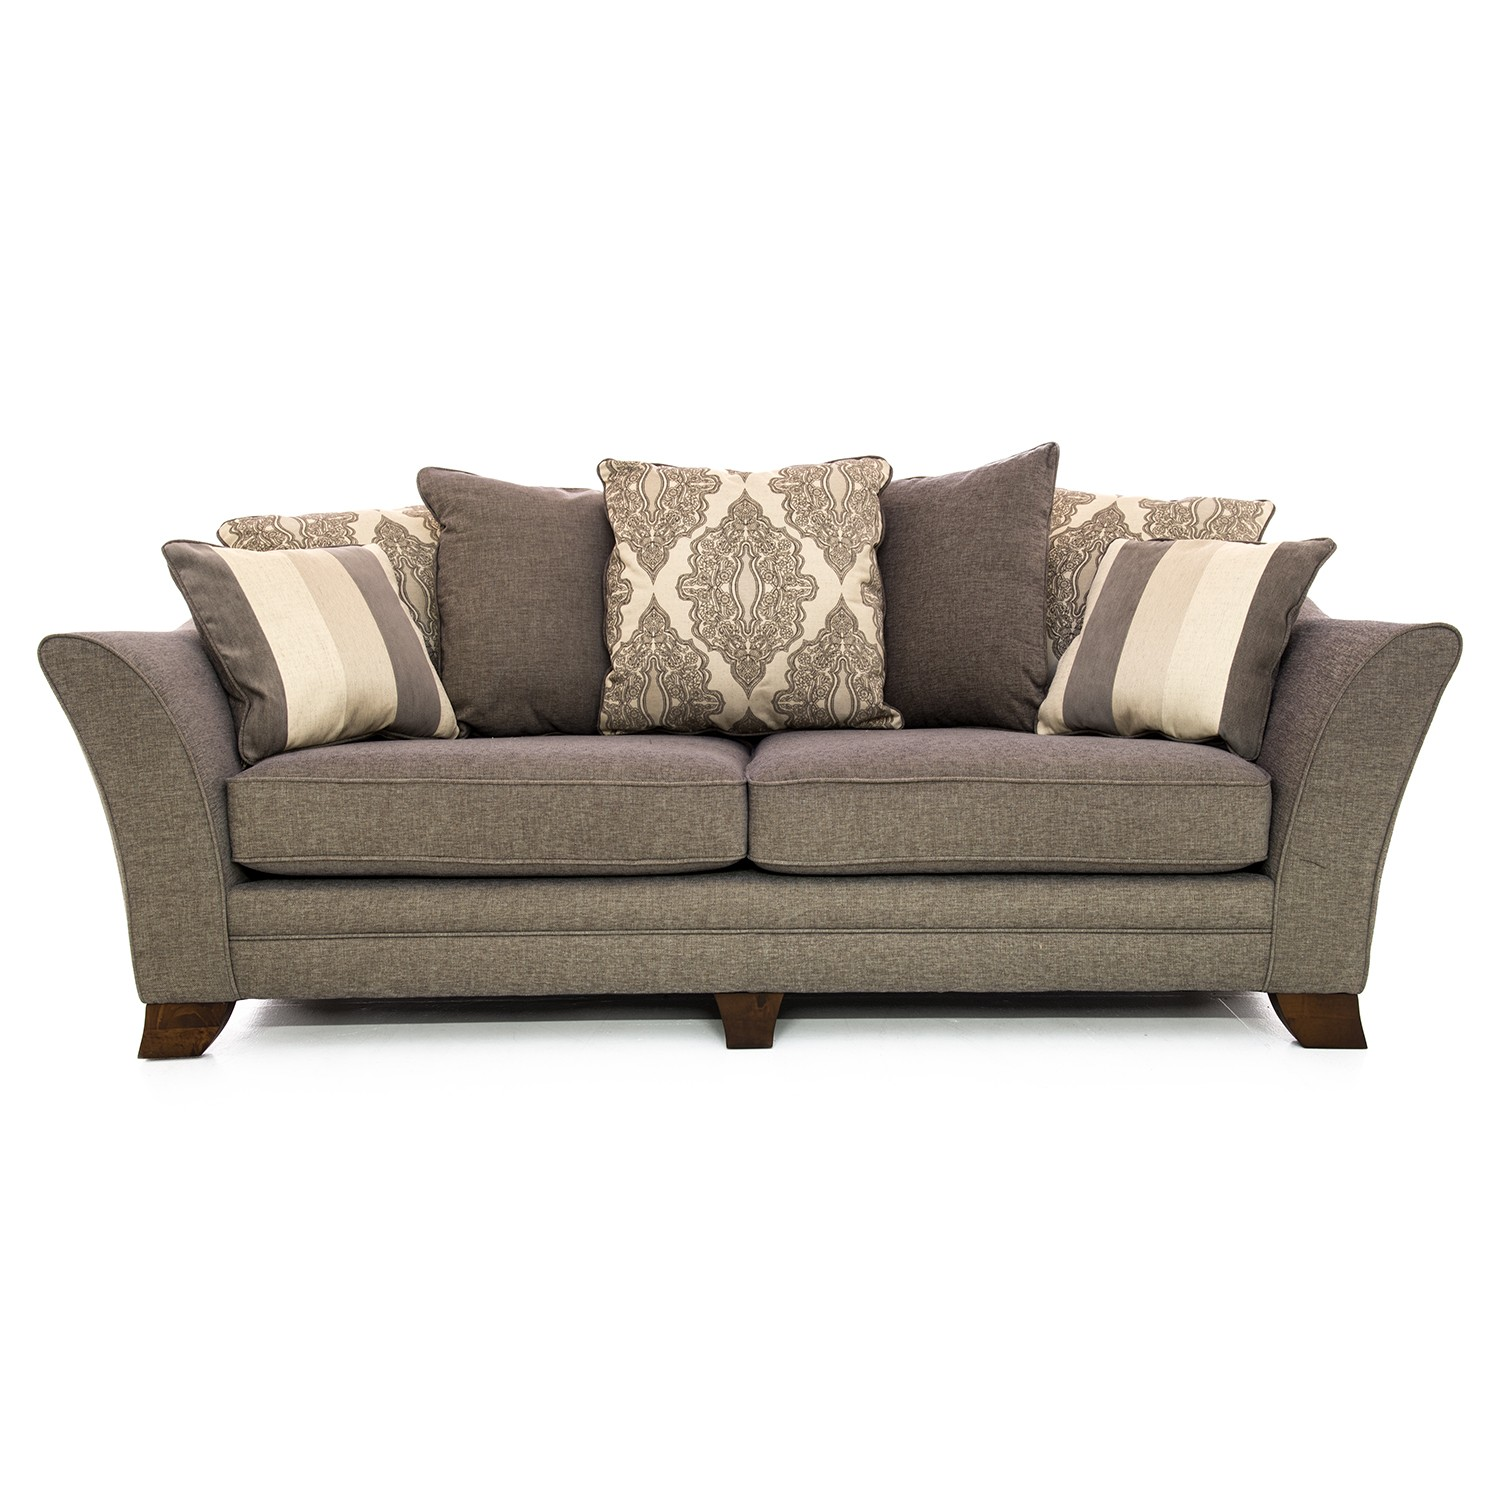 Casa harvey 4 seater pillow back sofa leekes for Perez 4 seater pillow back sectional sofa